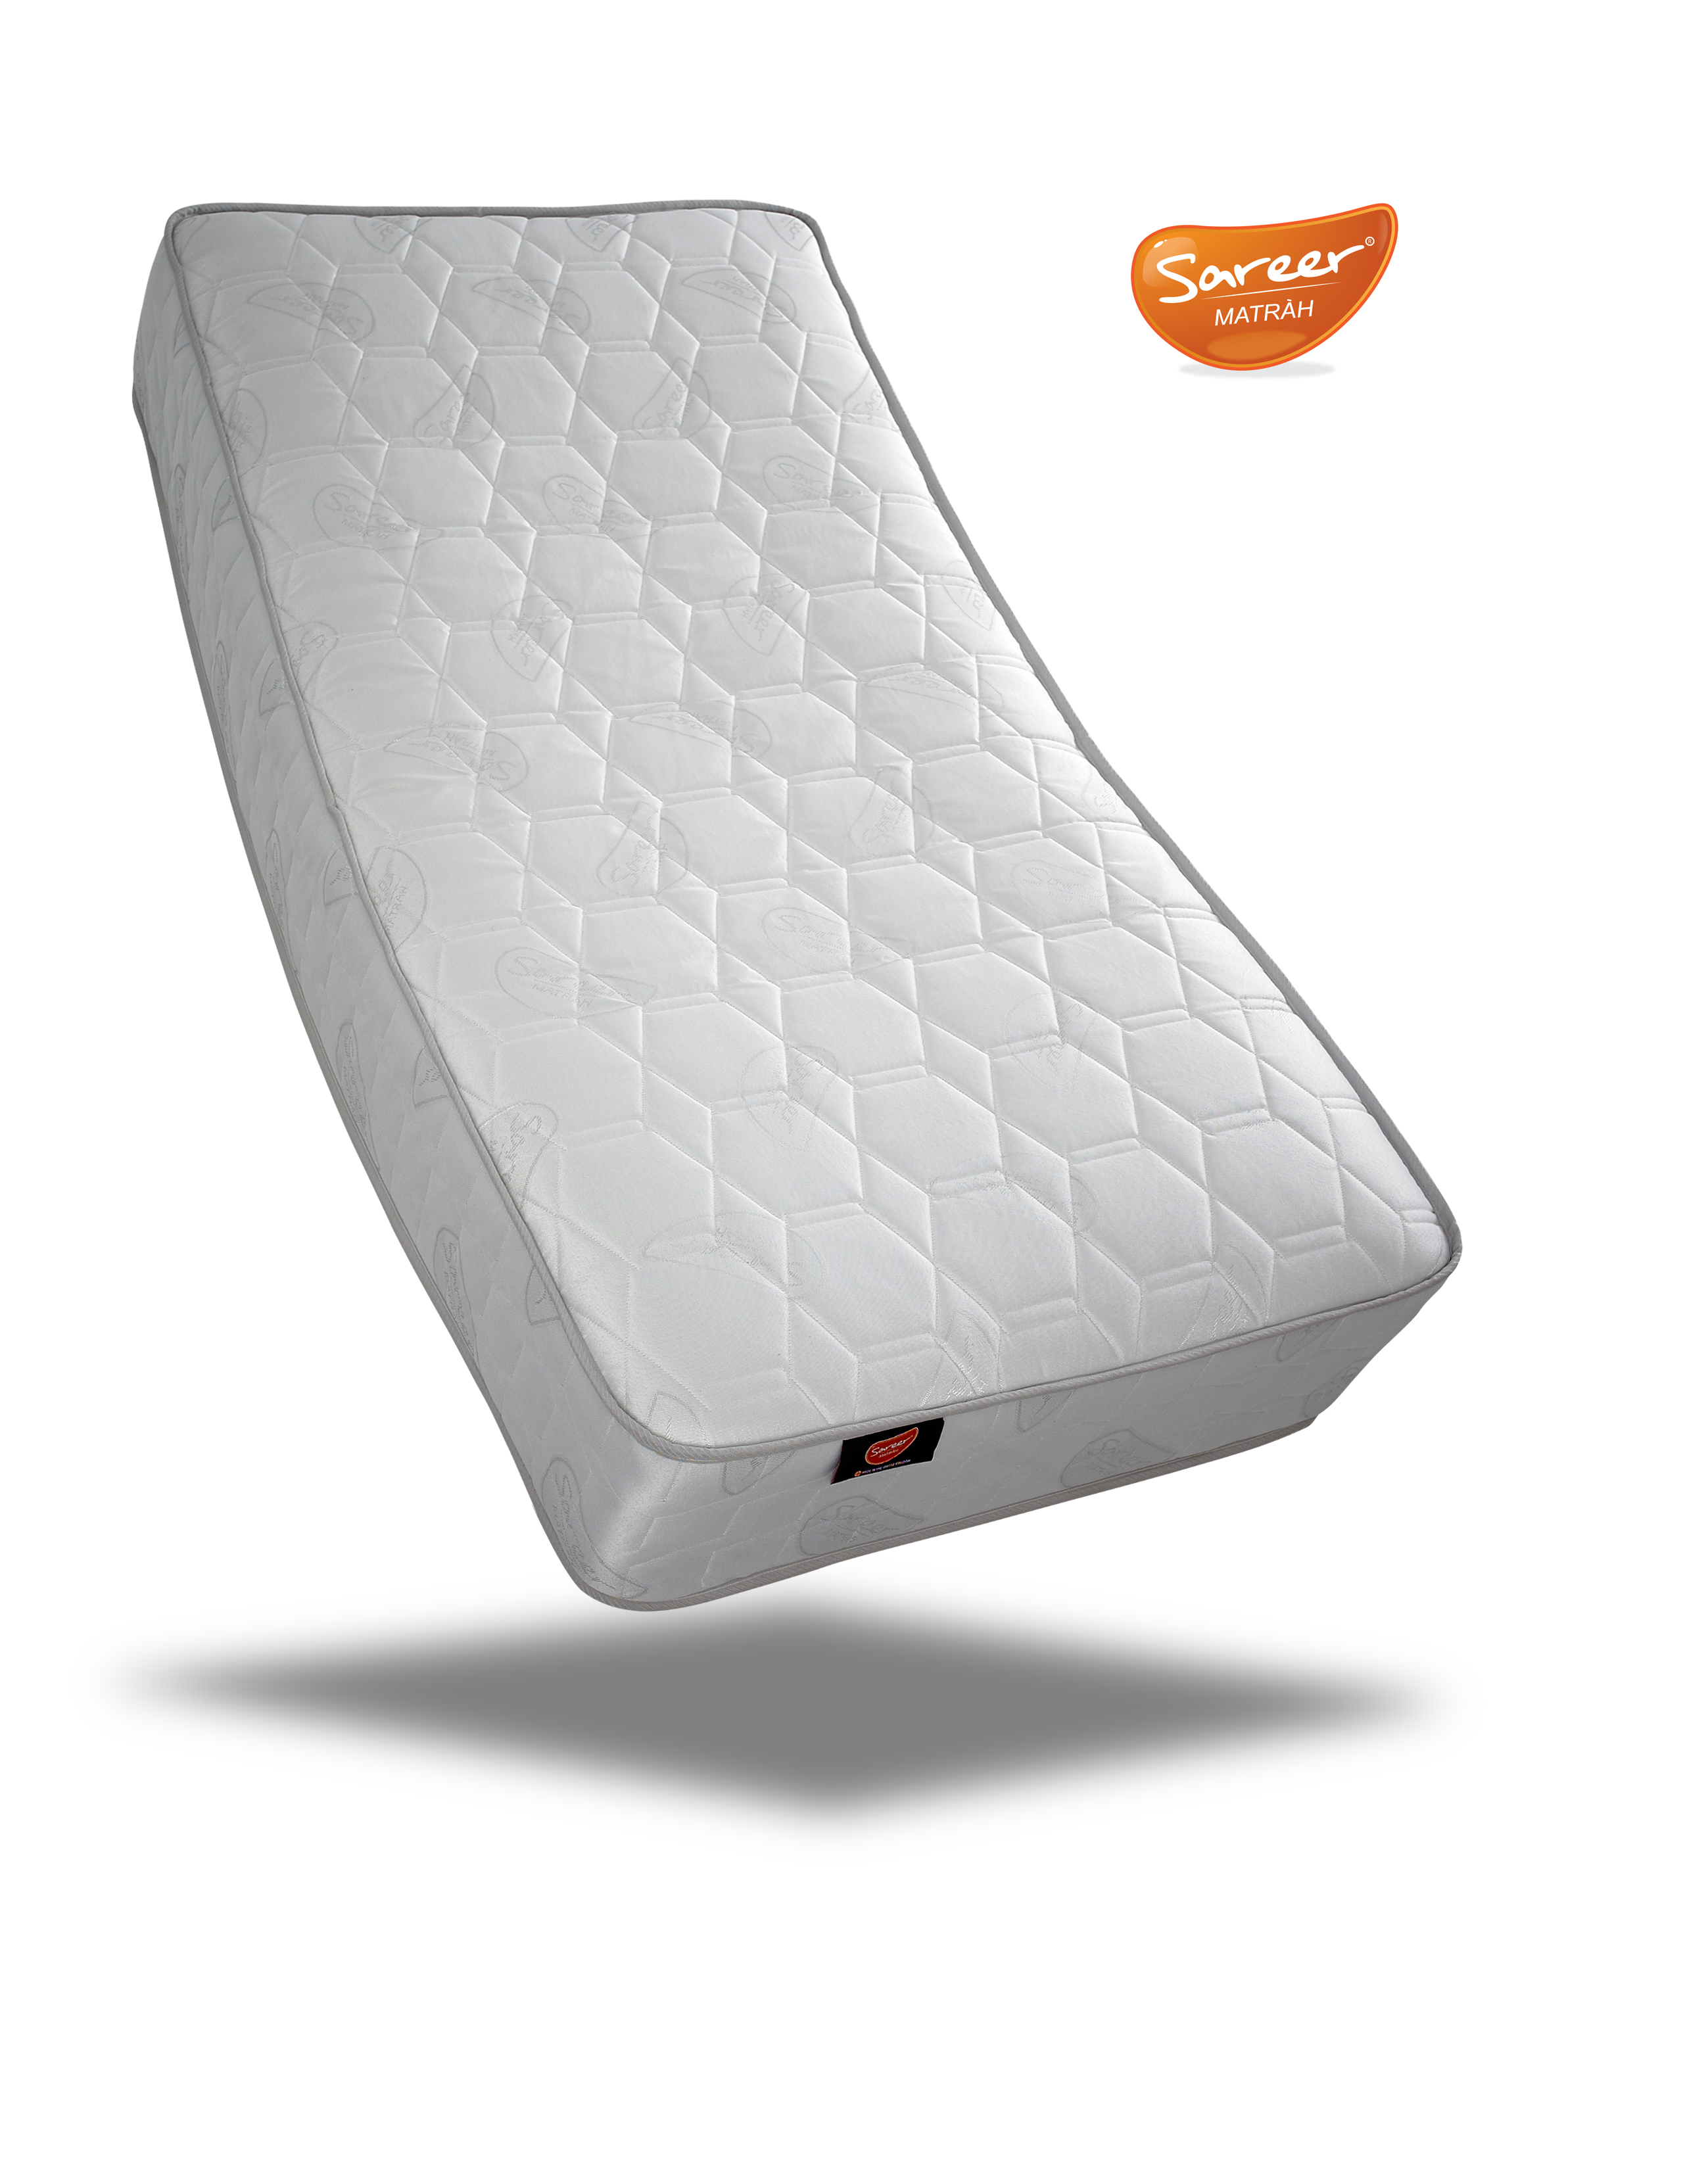 alluring orthopaedic amazon your mattress foam for decor to as apply pics ikea home memory ukappealing john appealing topper orthopedic lewis complete